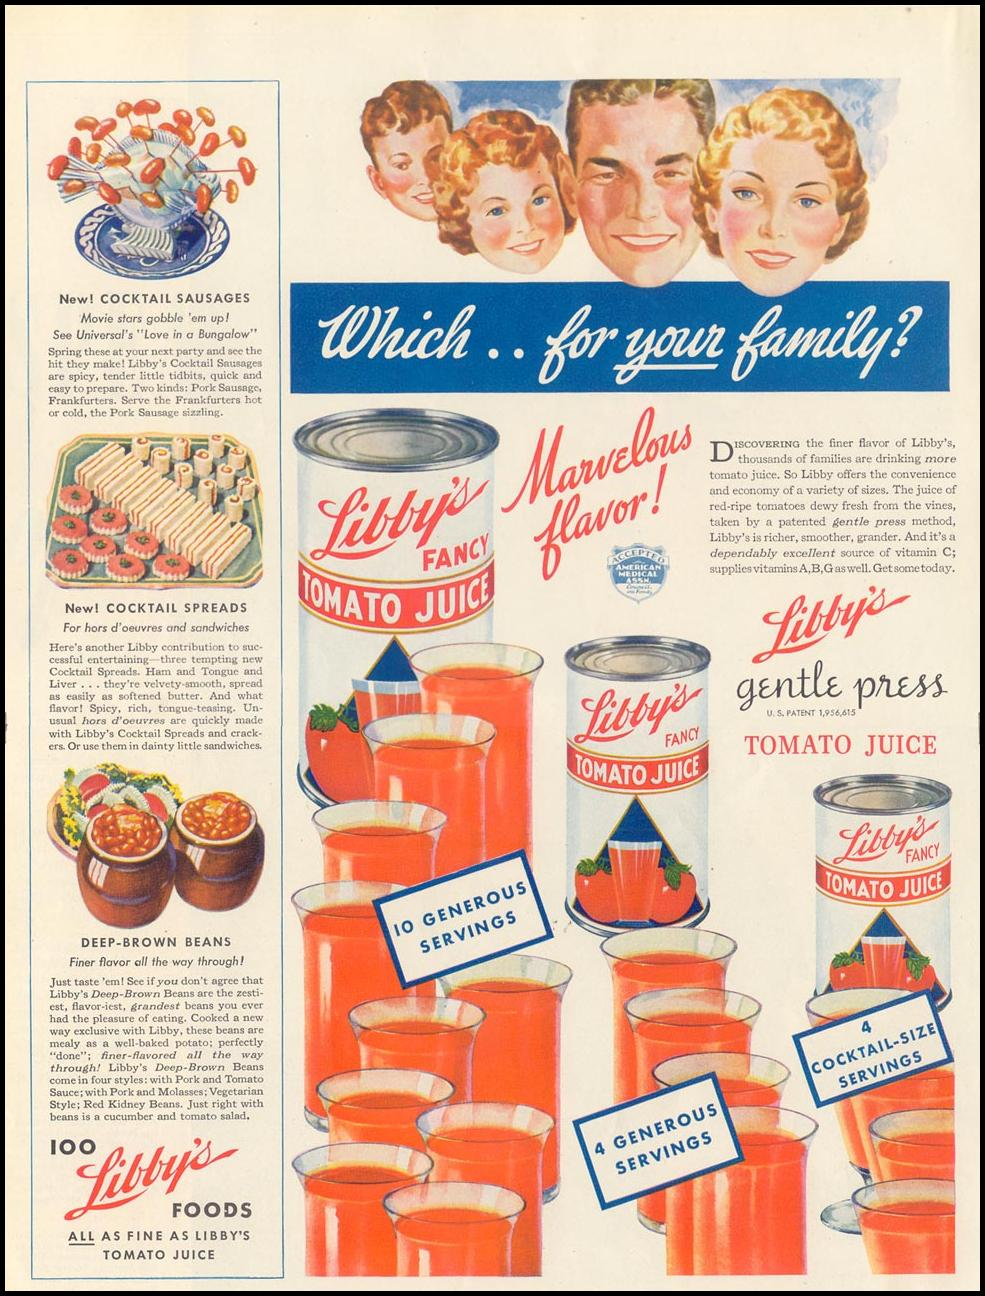 LIBBY'S GENTLE PRESS TOMATO JUICE LIFE 07/26/1937